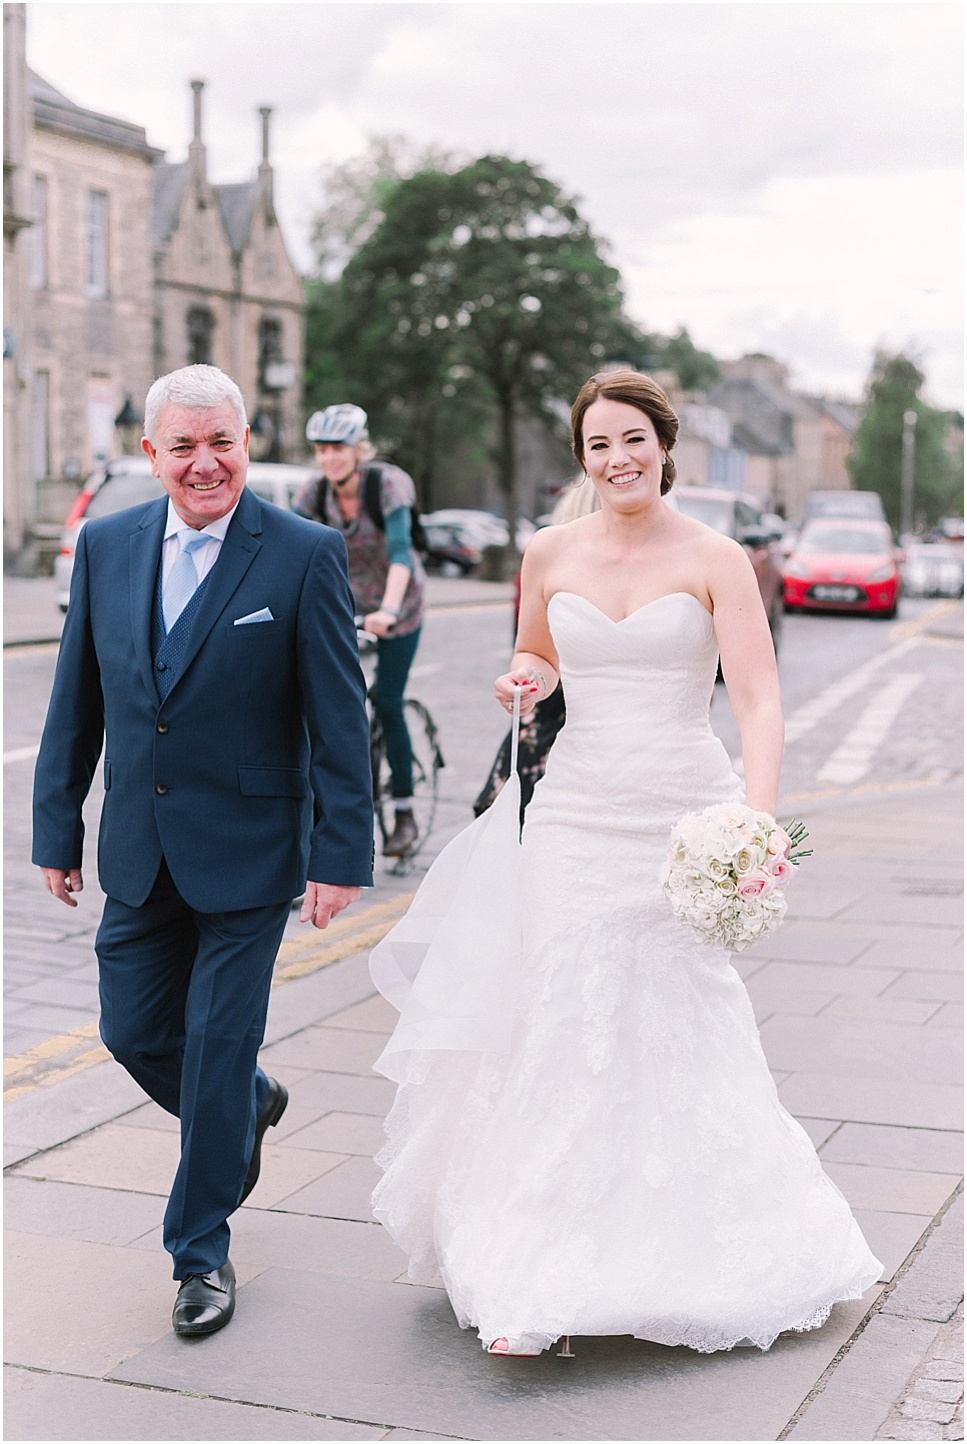 mareikemurray_wedding_photography_linlithgow_burgh_halls_029.jpg